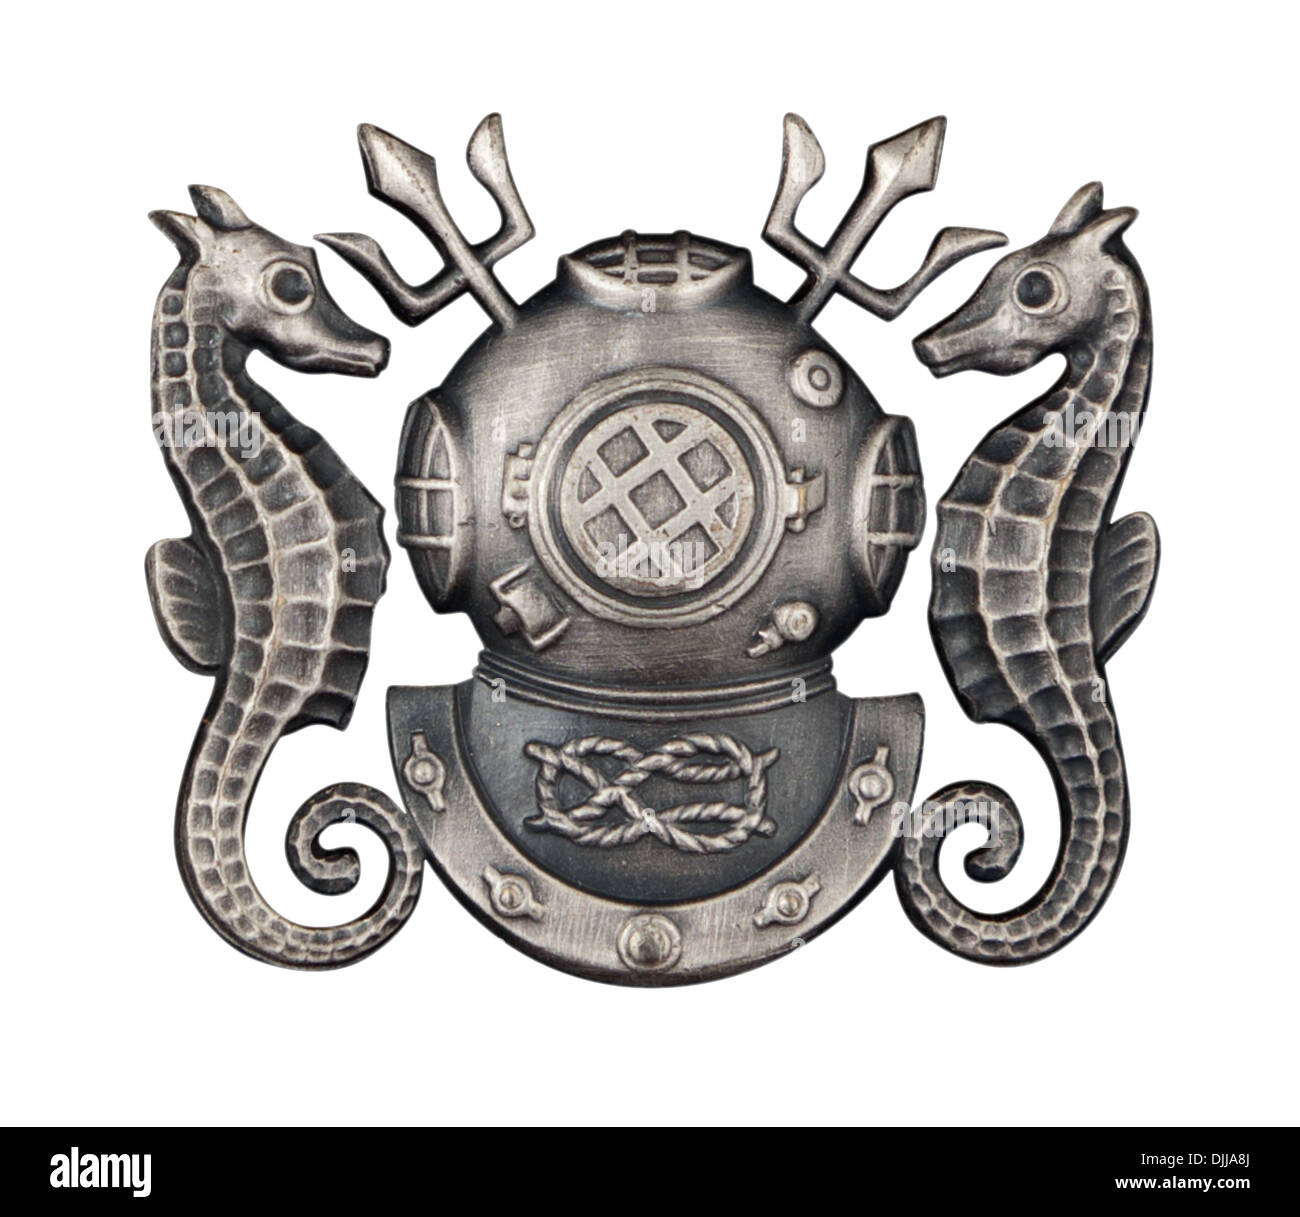 Cutout image of a Navy Master Diver badge on white Stock Photo